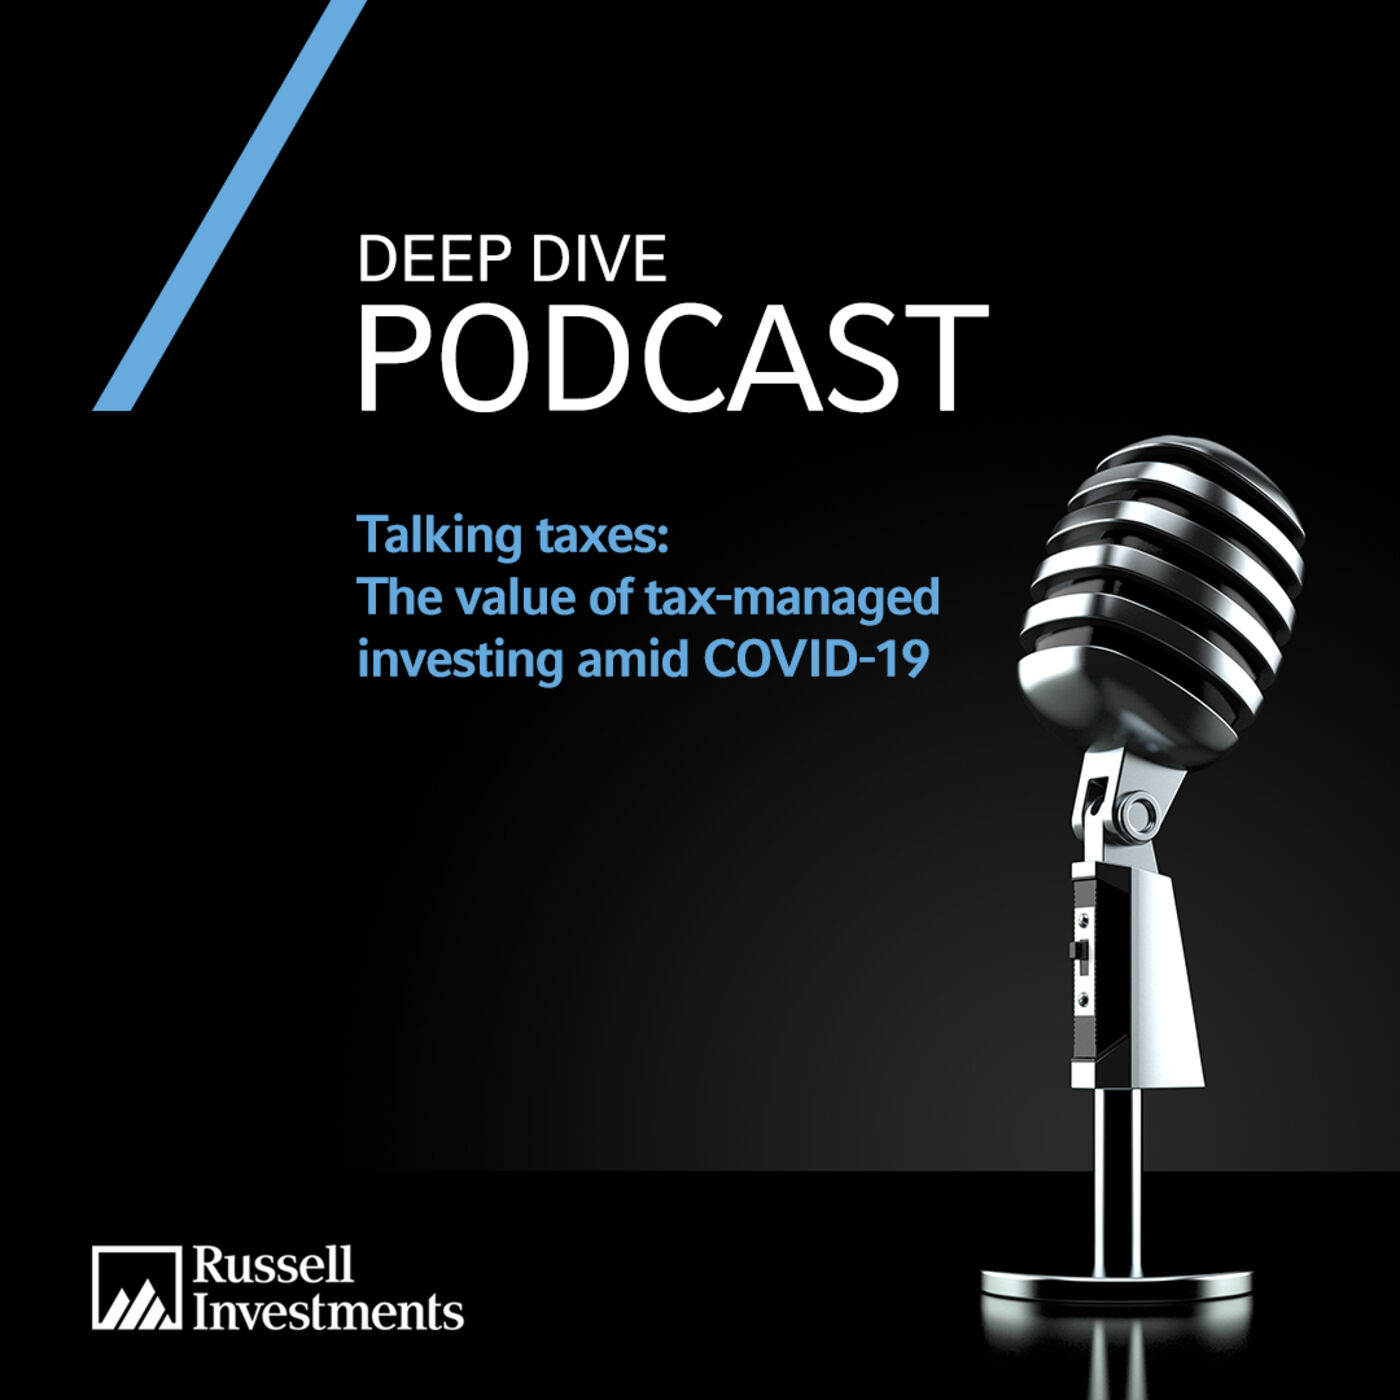 Deep Dive | Talking taxes: The value of tax-managed investing amid COVID-19